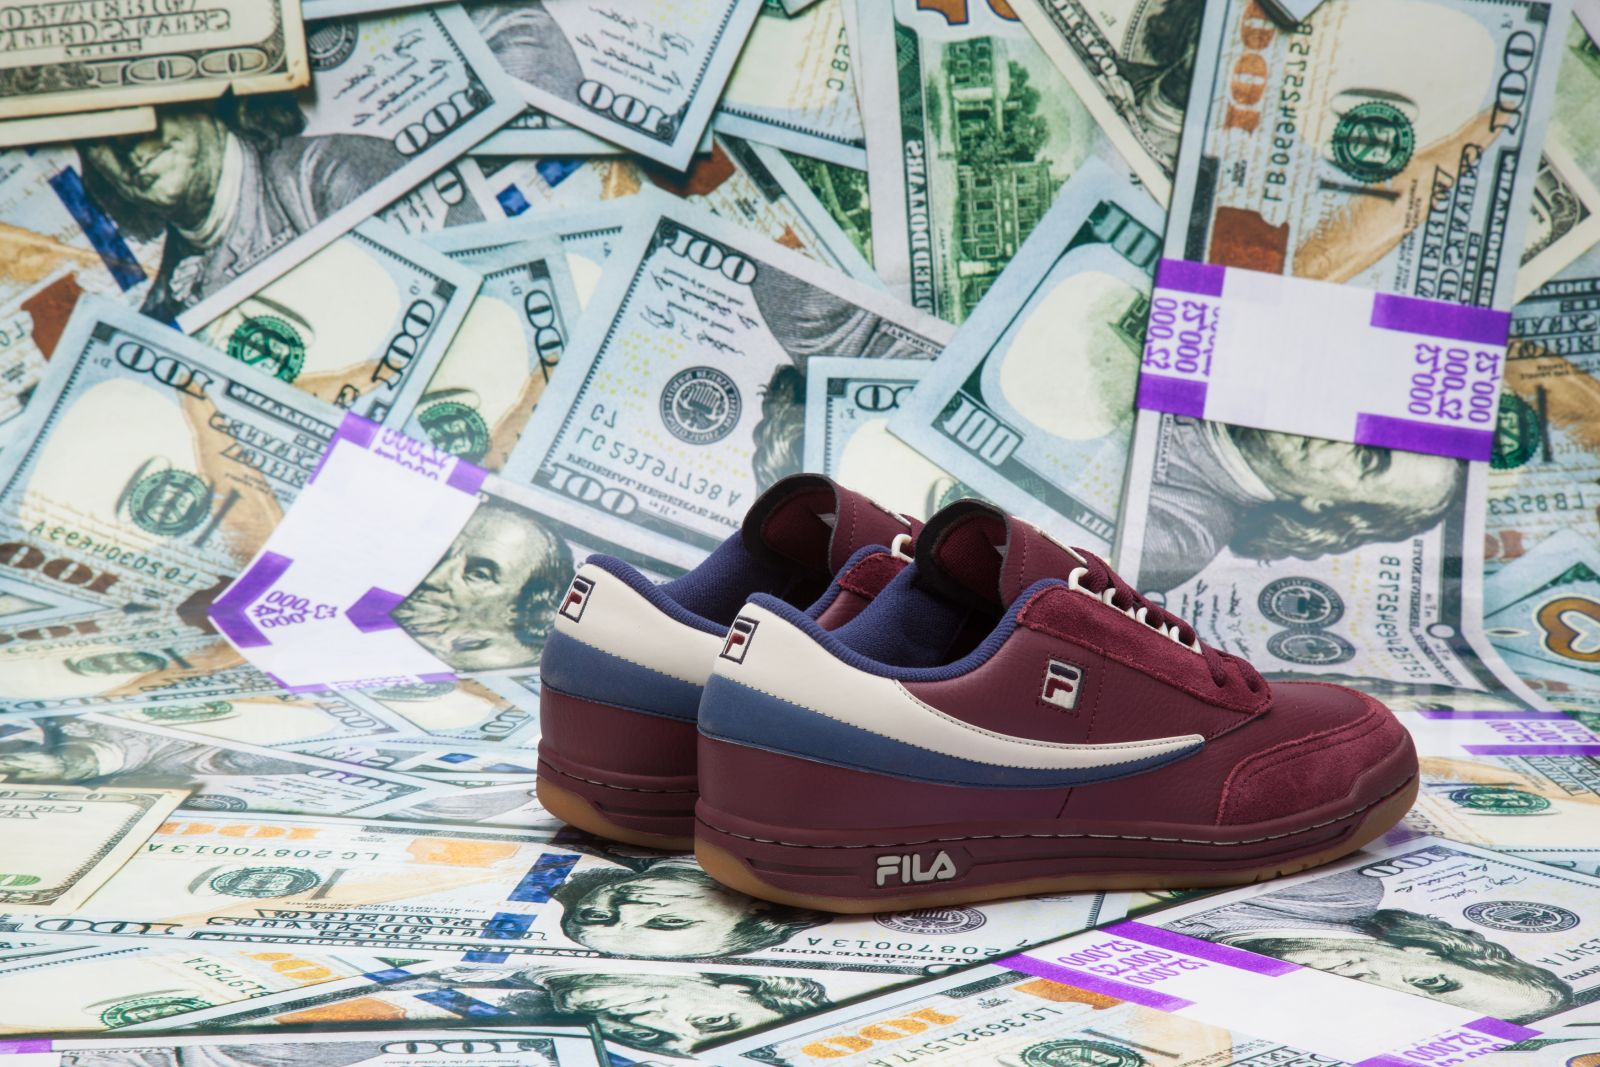 Burn Rubber x Fila Original Tennis Doughboy